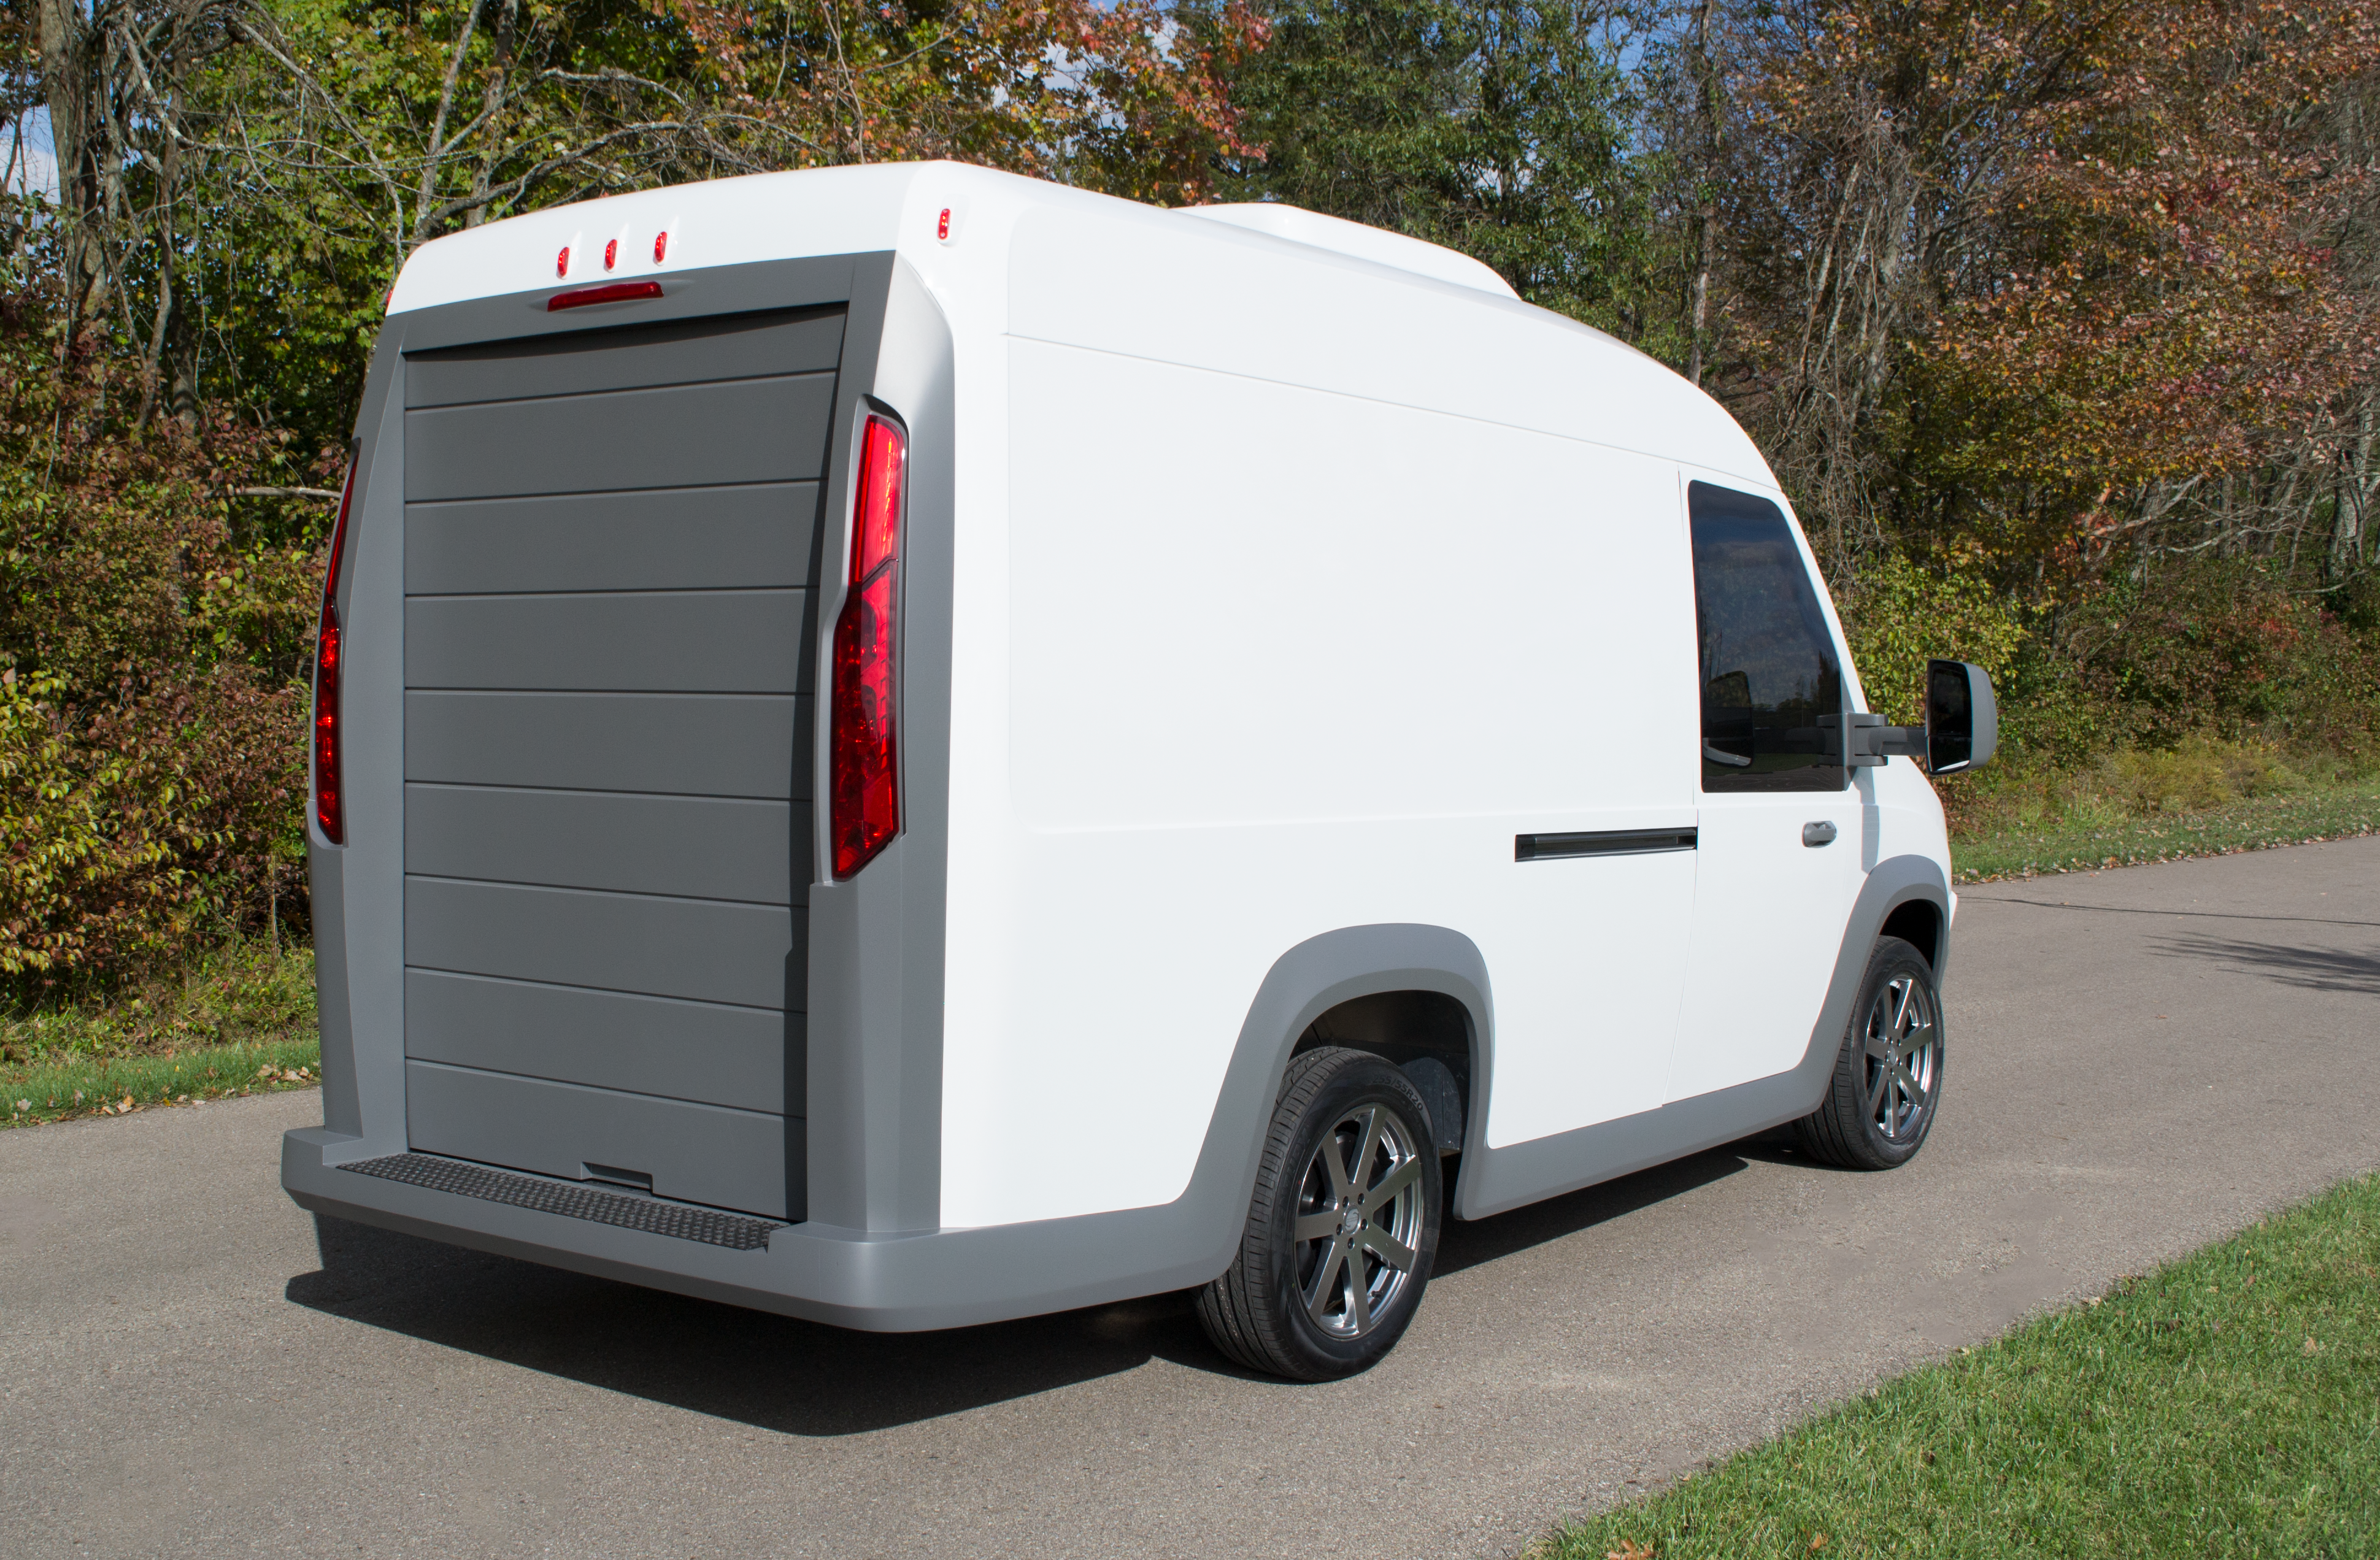 Workhorse Is A Leader In Making Low And Zero Emissions Commercial Vehicles Its W 15 Plug Hybrid Pickup Truck Optimized For Use By Utility Companies